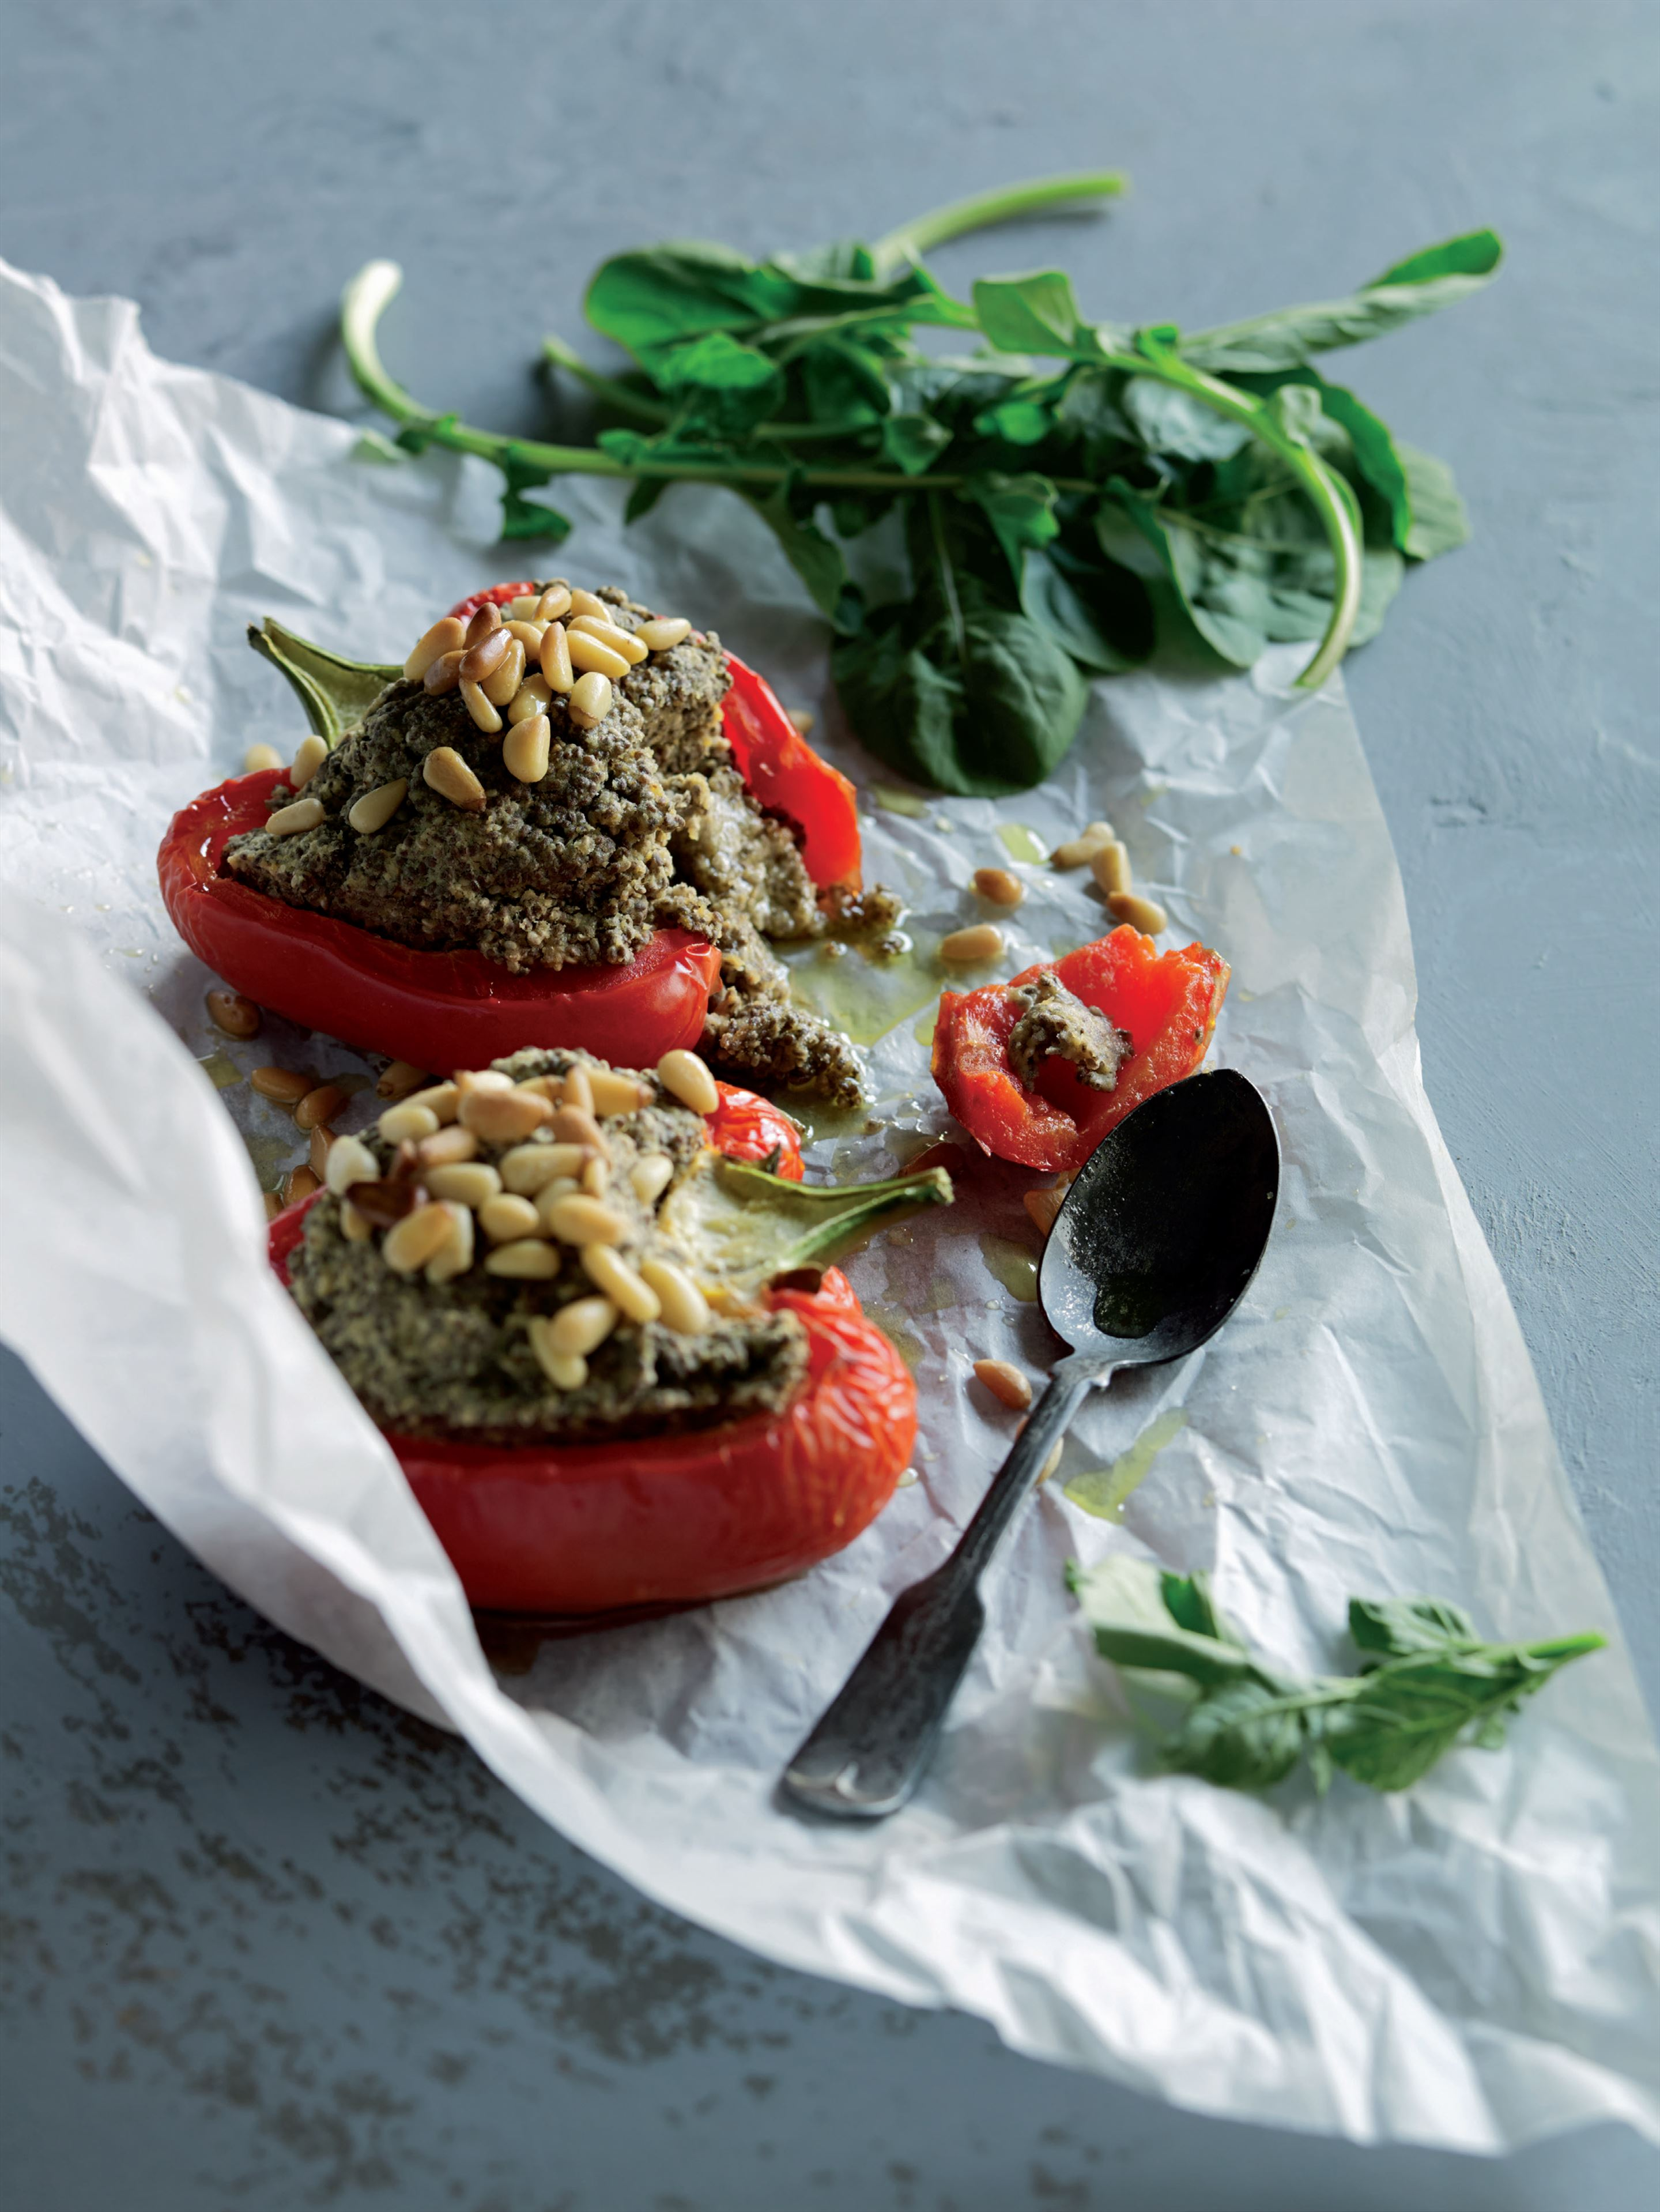 Peppers stuffed with chia, hummus and pine nuts